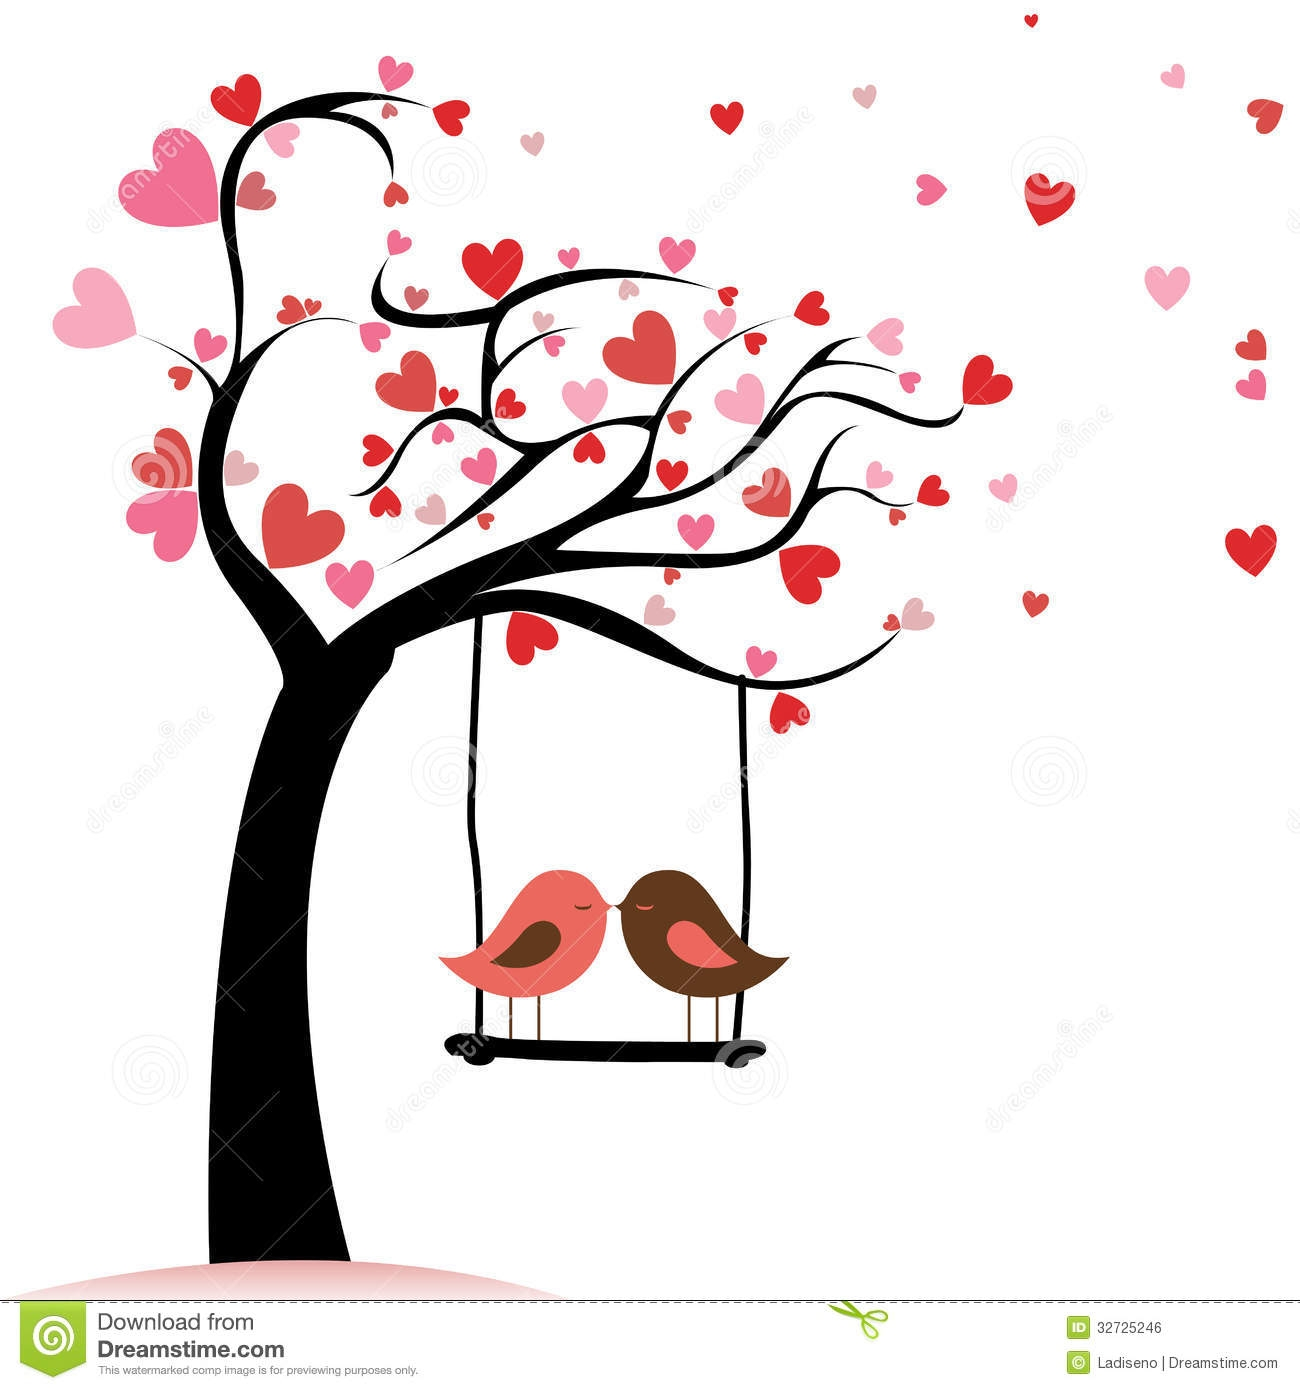 Two birds in love clipart.